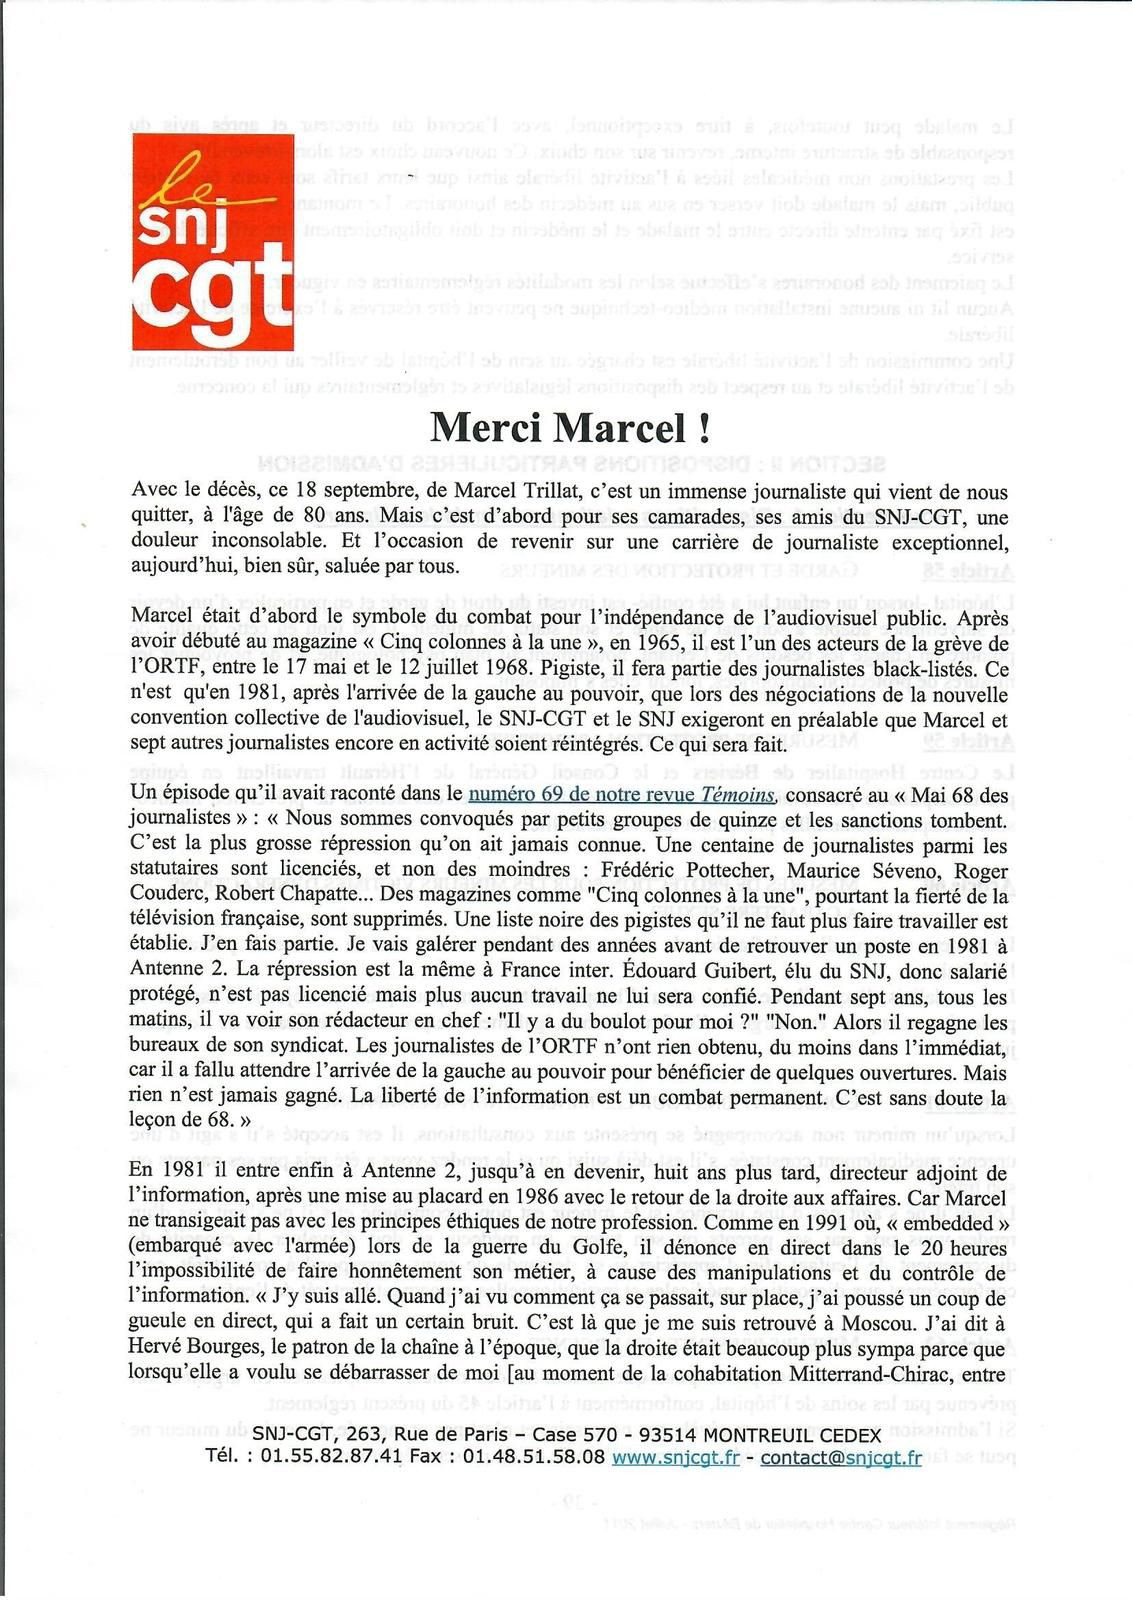 HOMAGE A MARCEL TRILLAT :